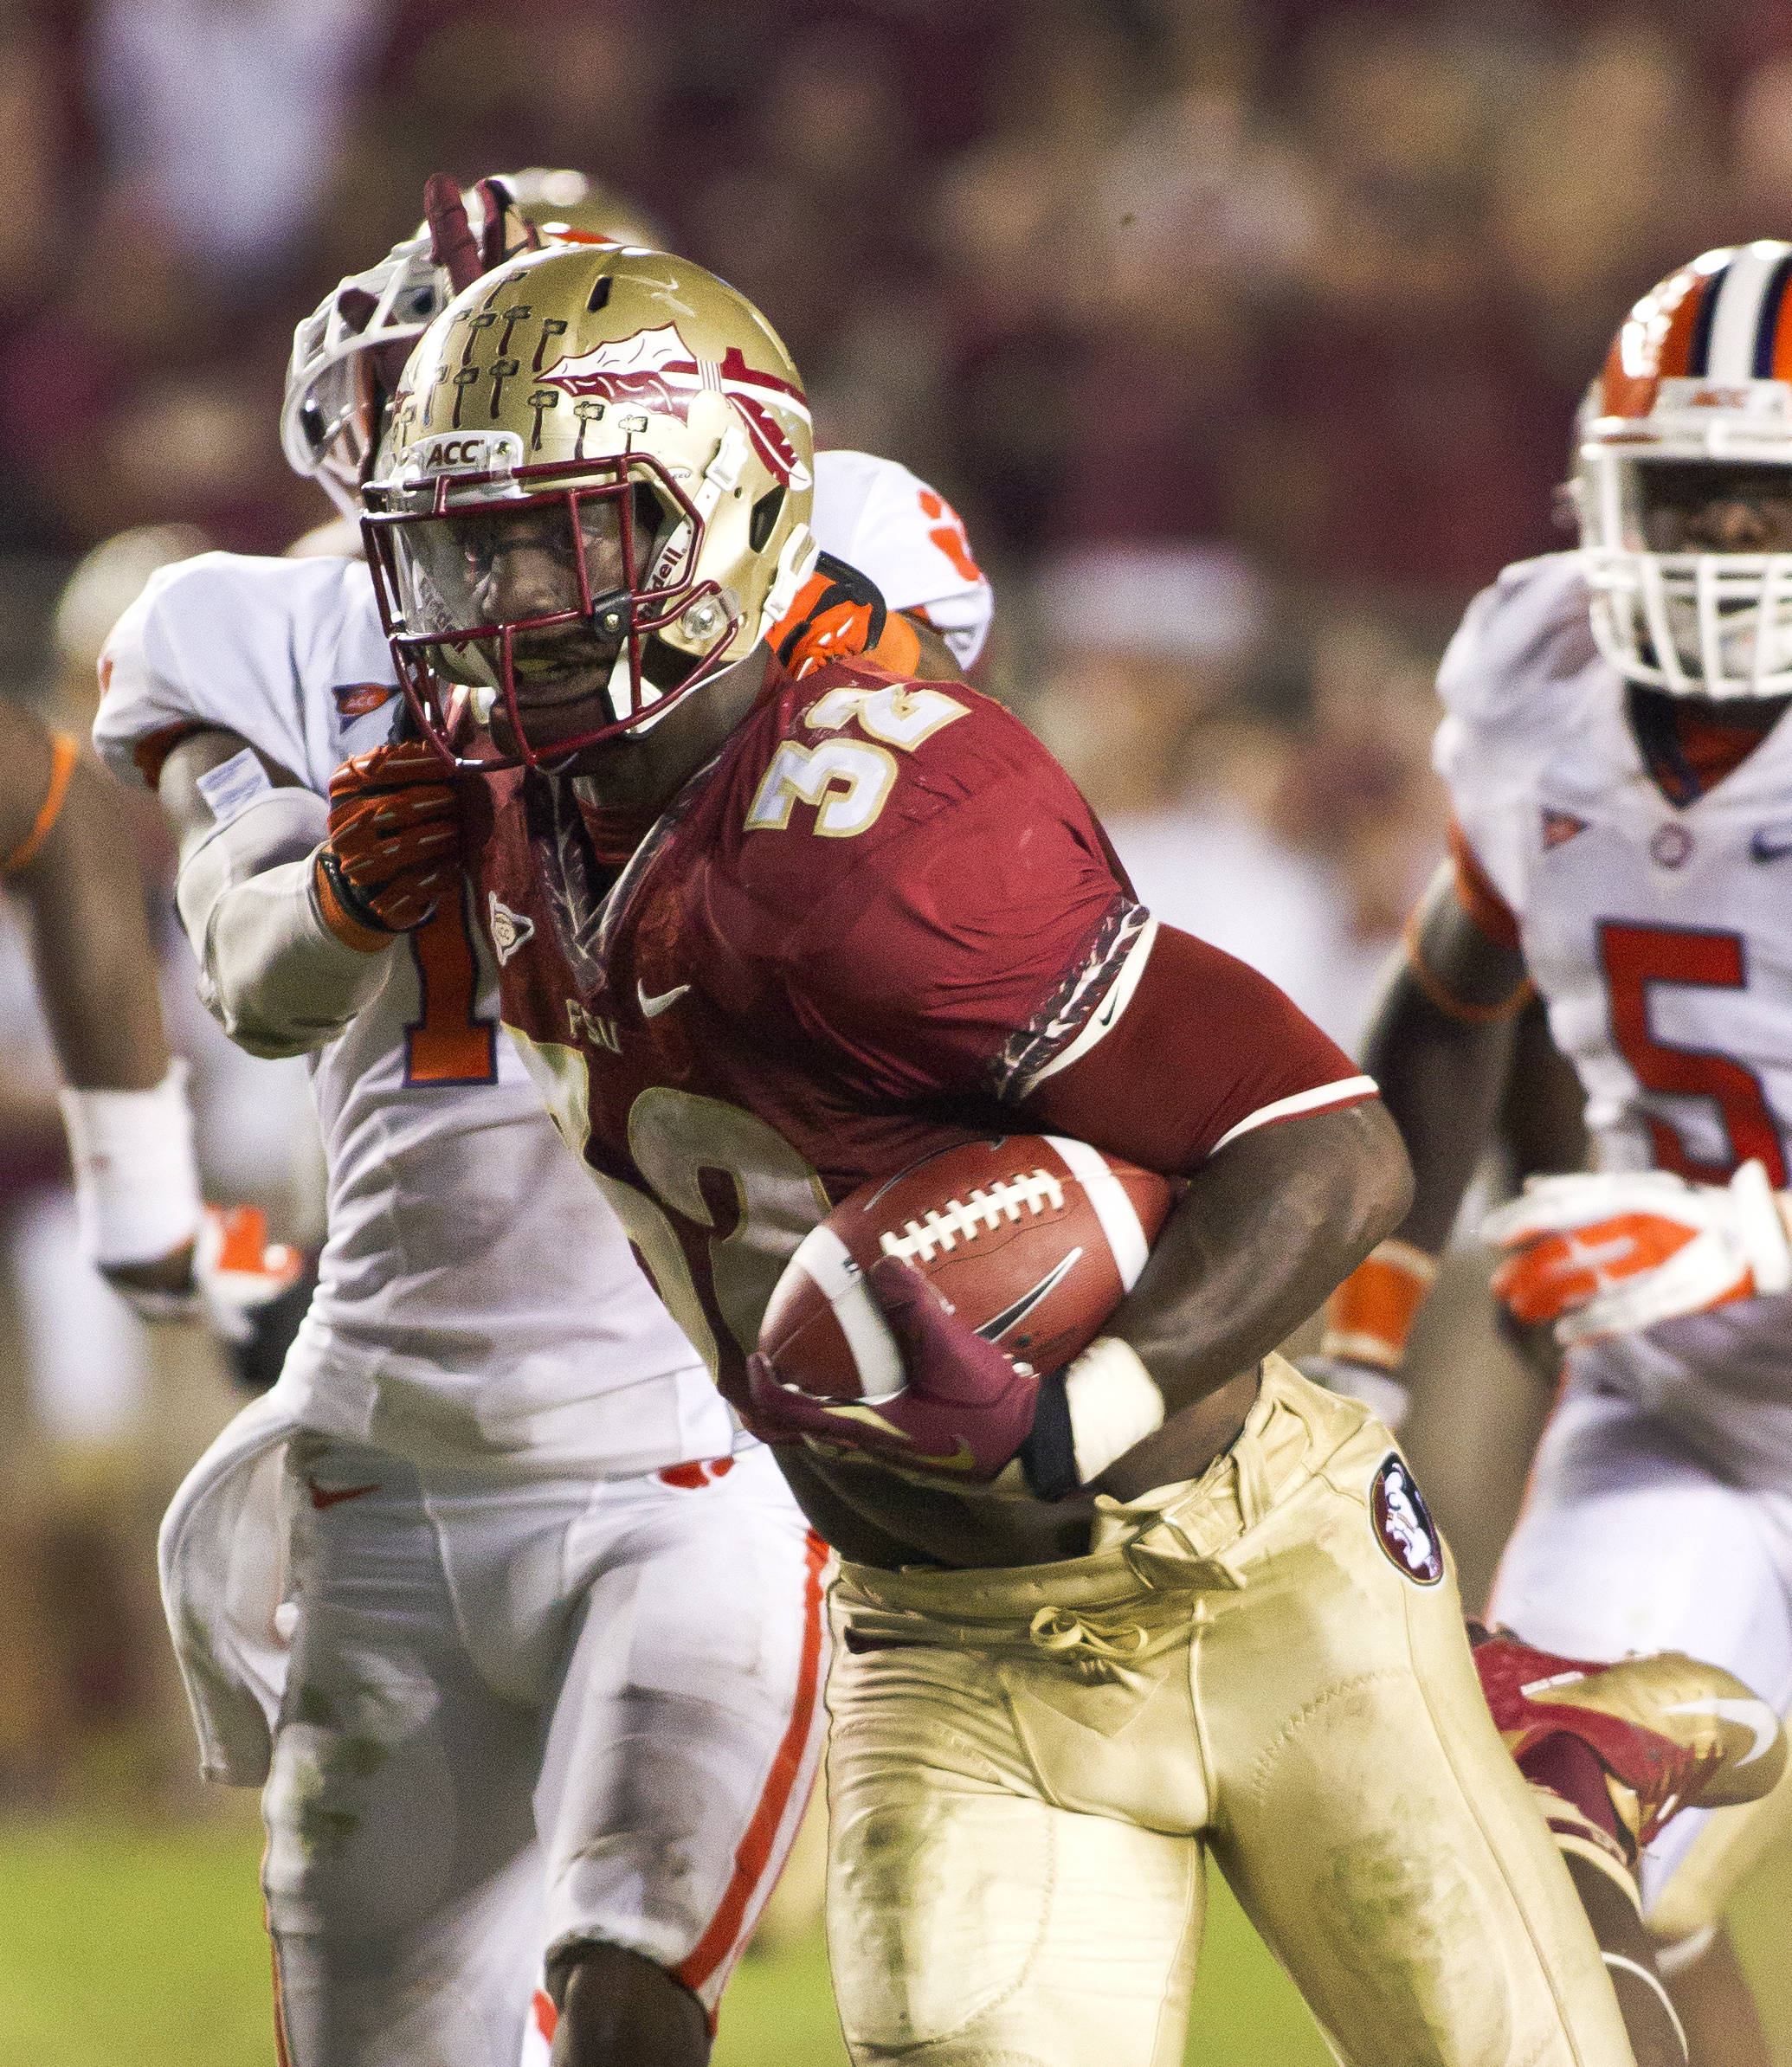 James Wilder Jr. (32) breaking free from a defender on his touchdown run, FSU vs Clemson, 9/22/12 (Photo by Steve Musco)